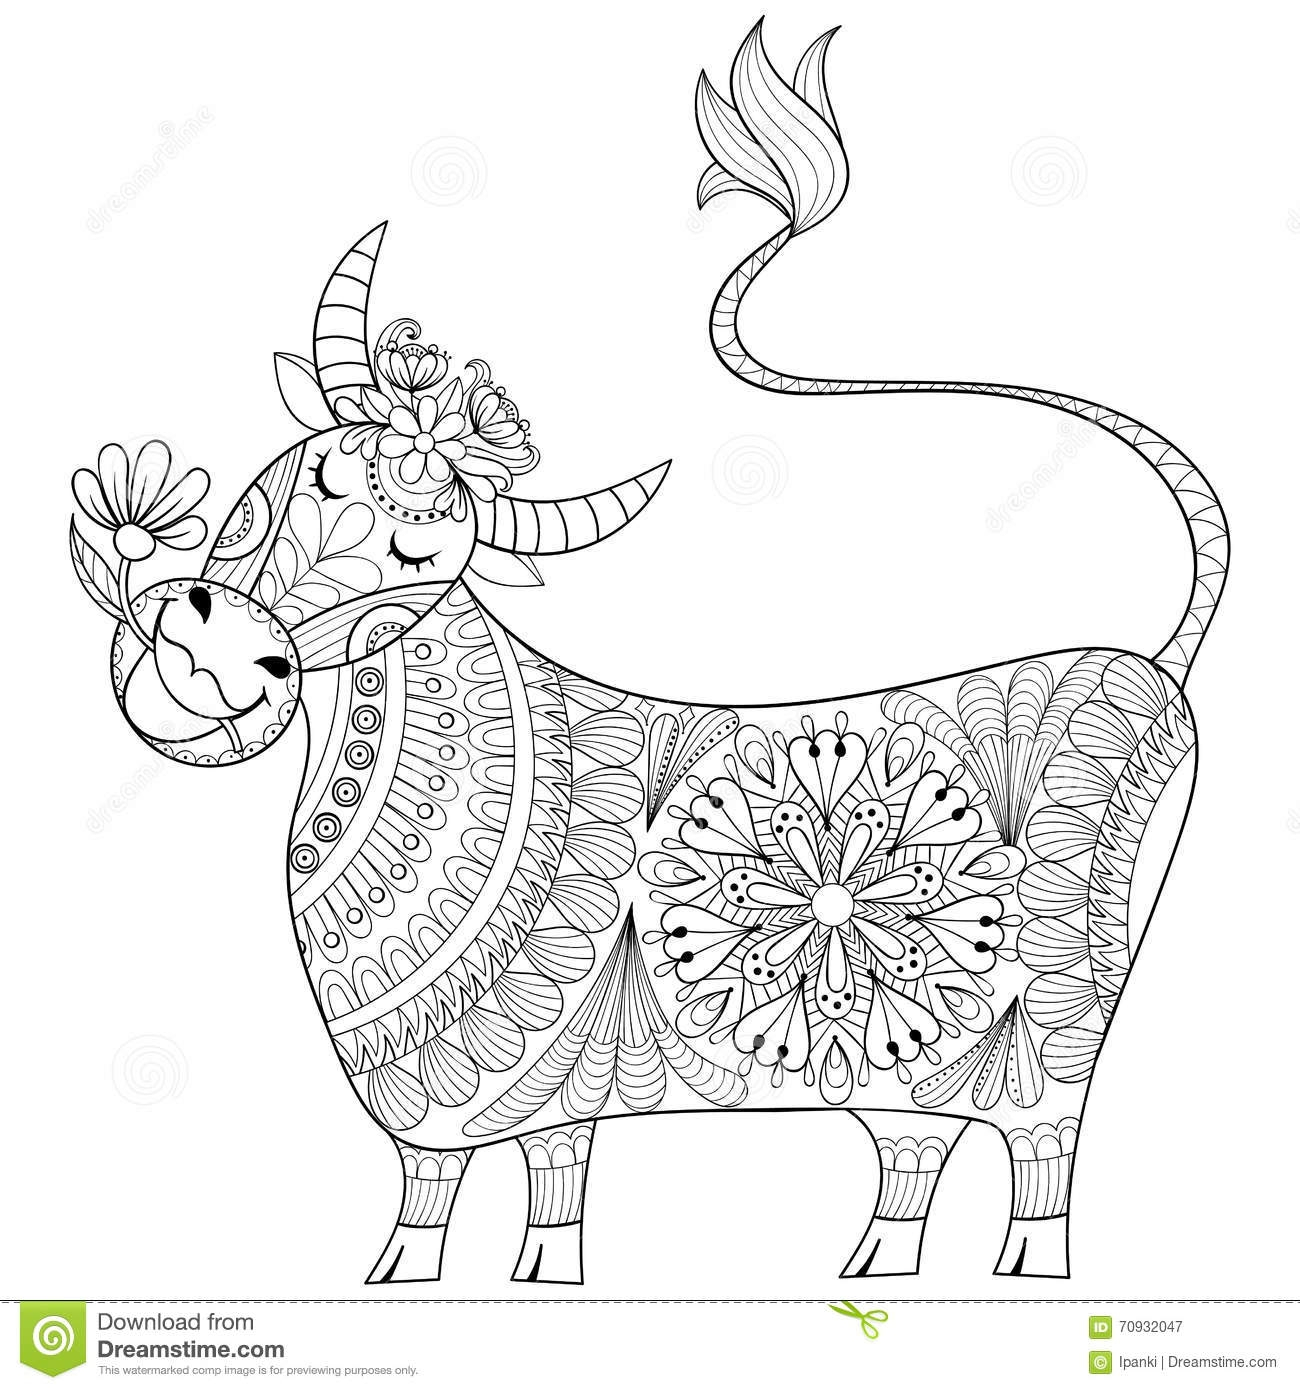 buffalo coloring page - stock illustration coloring page cow zenart stylized hand drawing milker illu illustration tribal totem mascot doodle animal art therapy image